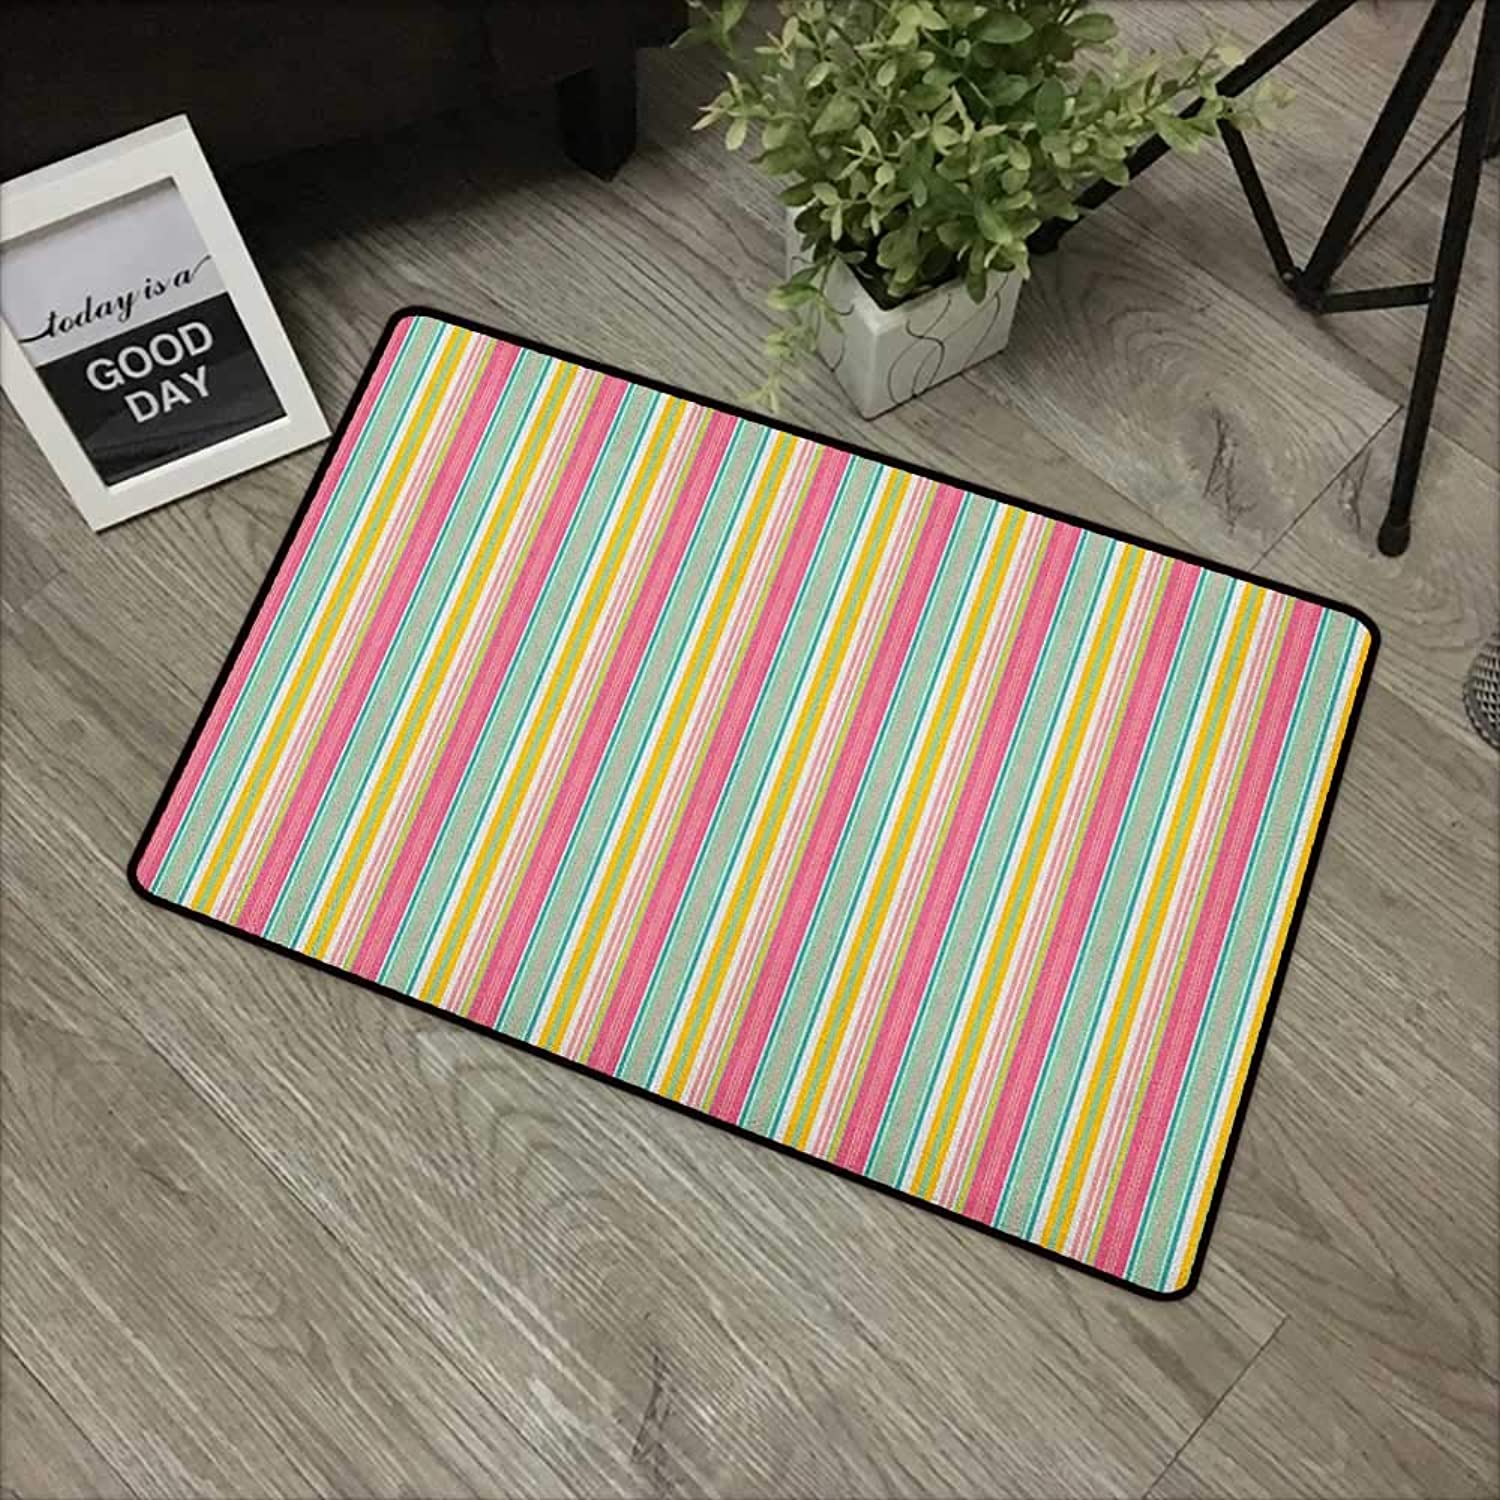 Pad W35 x L59 INCH Teal and White,colorful Bold Lines in greenical Order Cheerful Summer Design, Coral Marigold Turquoise Easy to Clean, no Deformation, no Fading Non-Slip Door Mat Carpet